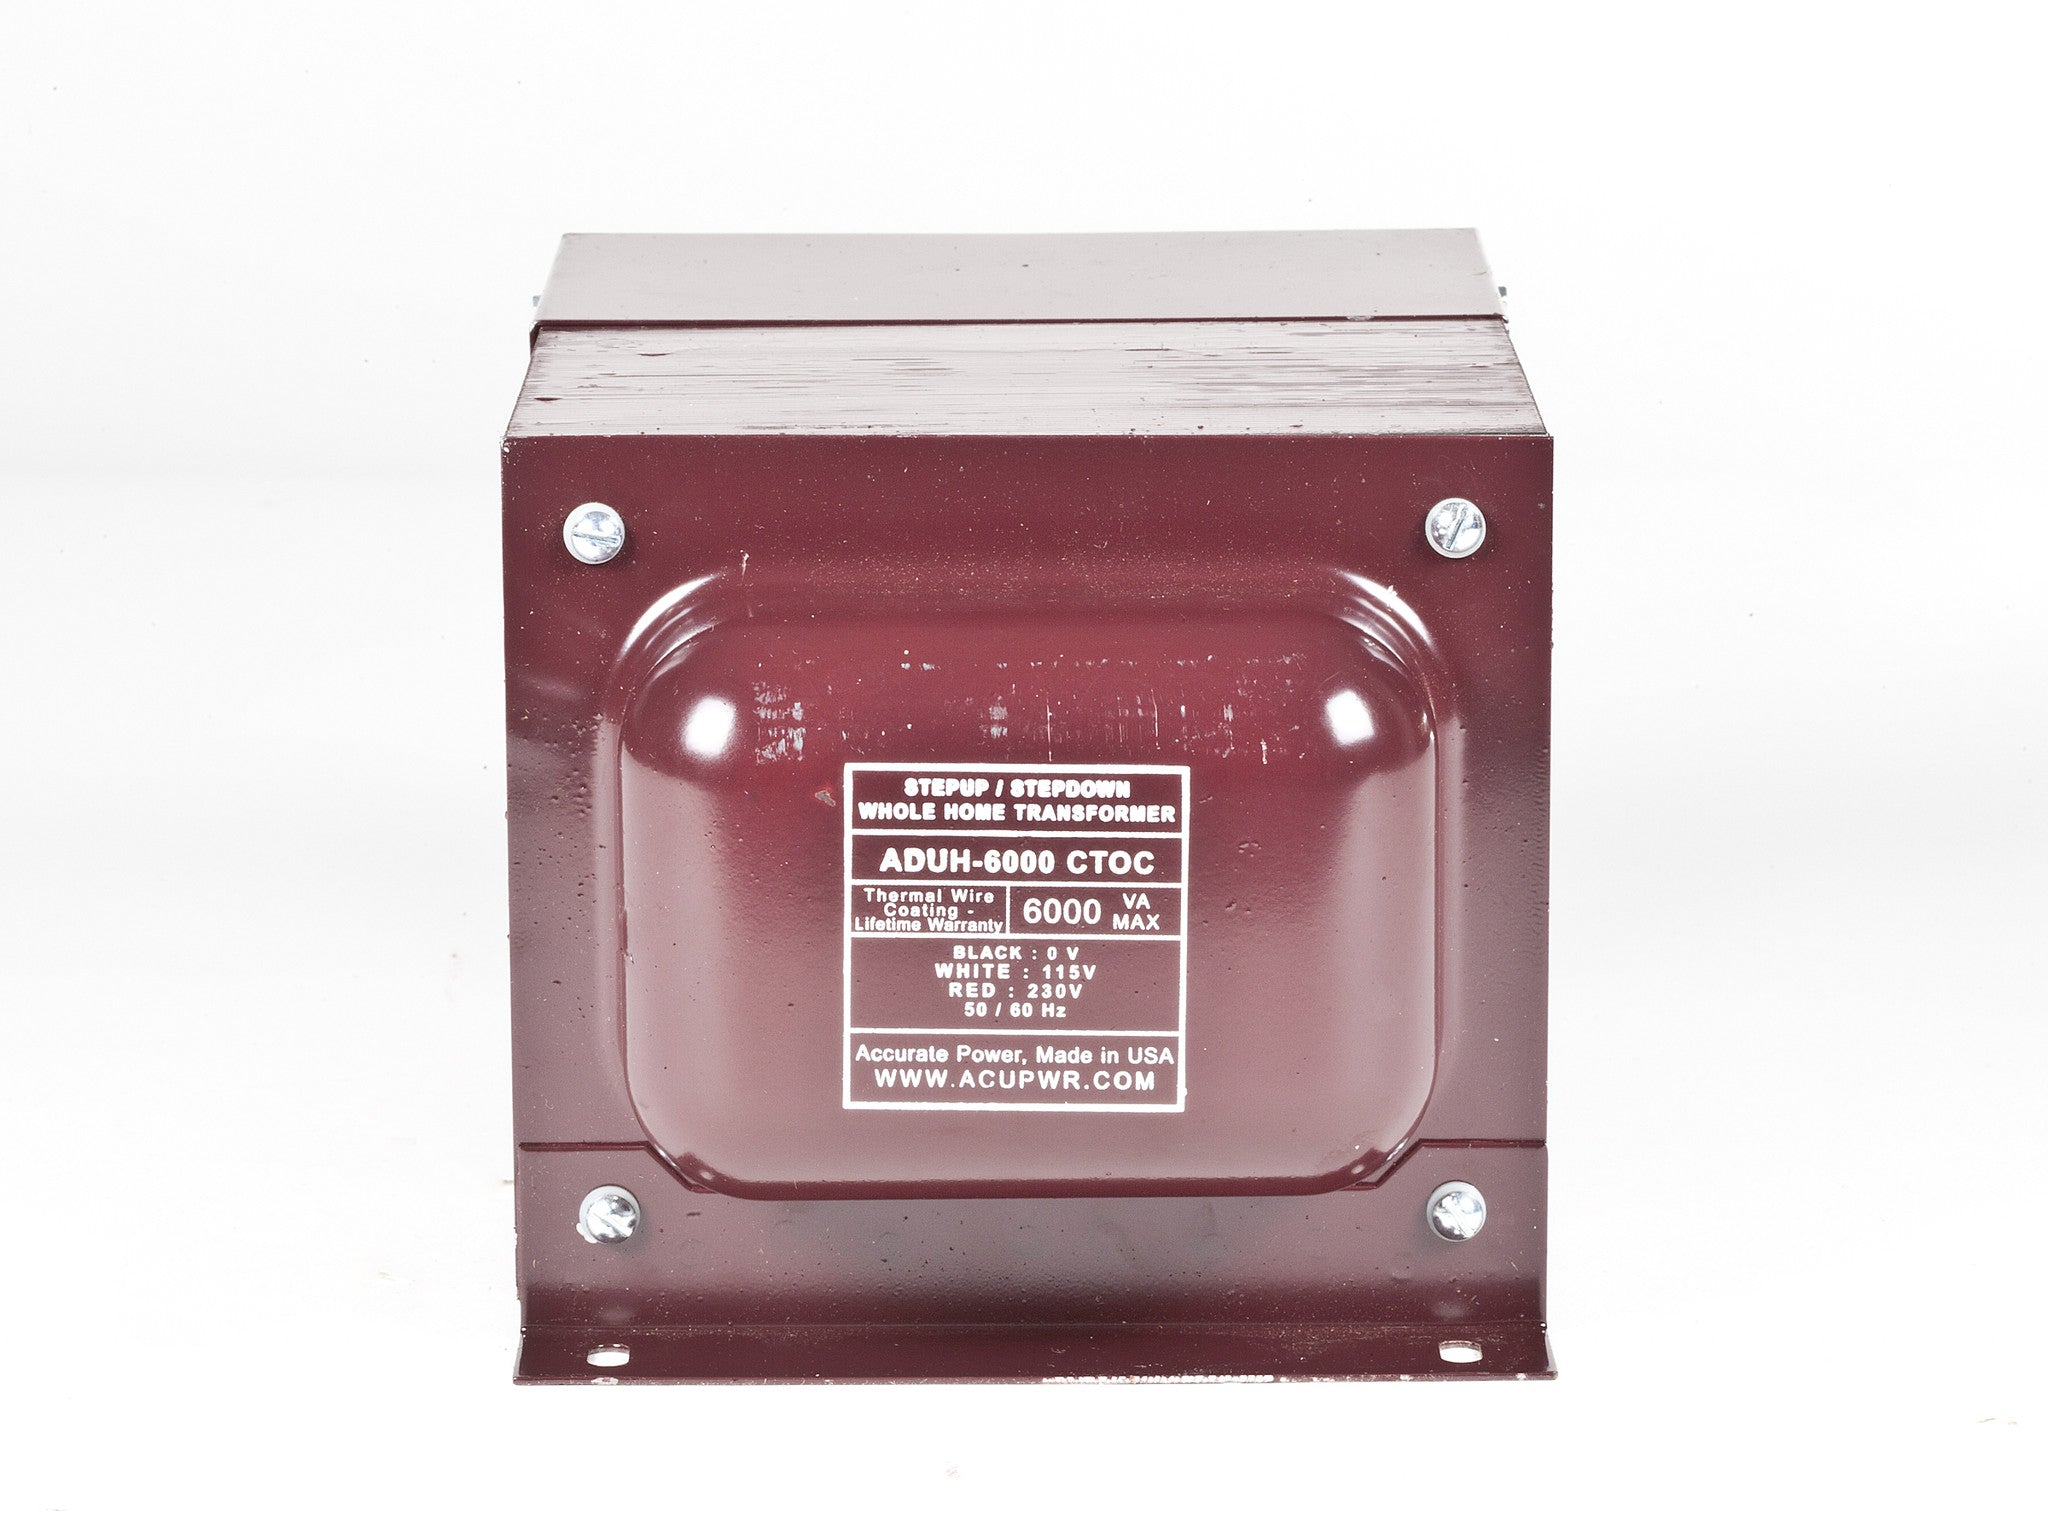 100 208 3 Phase Wiring Diagram besides Wiring Diagram For 208 3 Phase Light Fixture further 480v To 240v 3 Phase Transformer Wiring Diagram likewise Mars Transformer Wiring Diagram in addition Voltage Transformers 120 Volts To 100 Volts Wiring Diagrams. on 208 24 volt transformer wiring